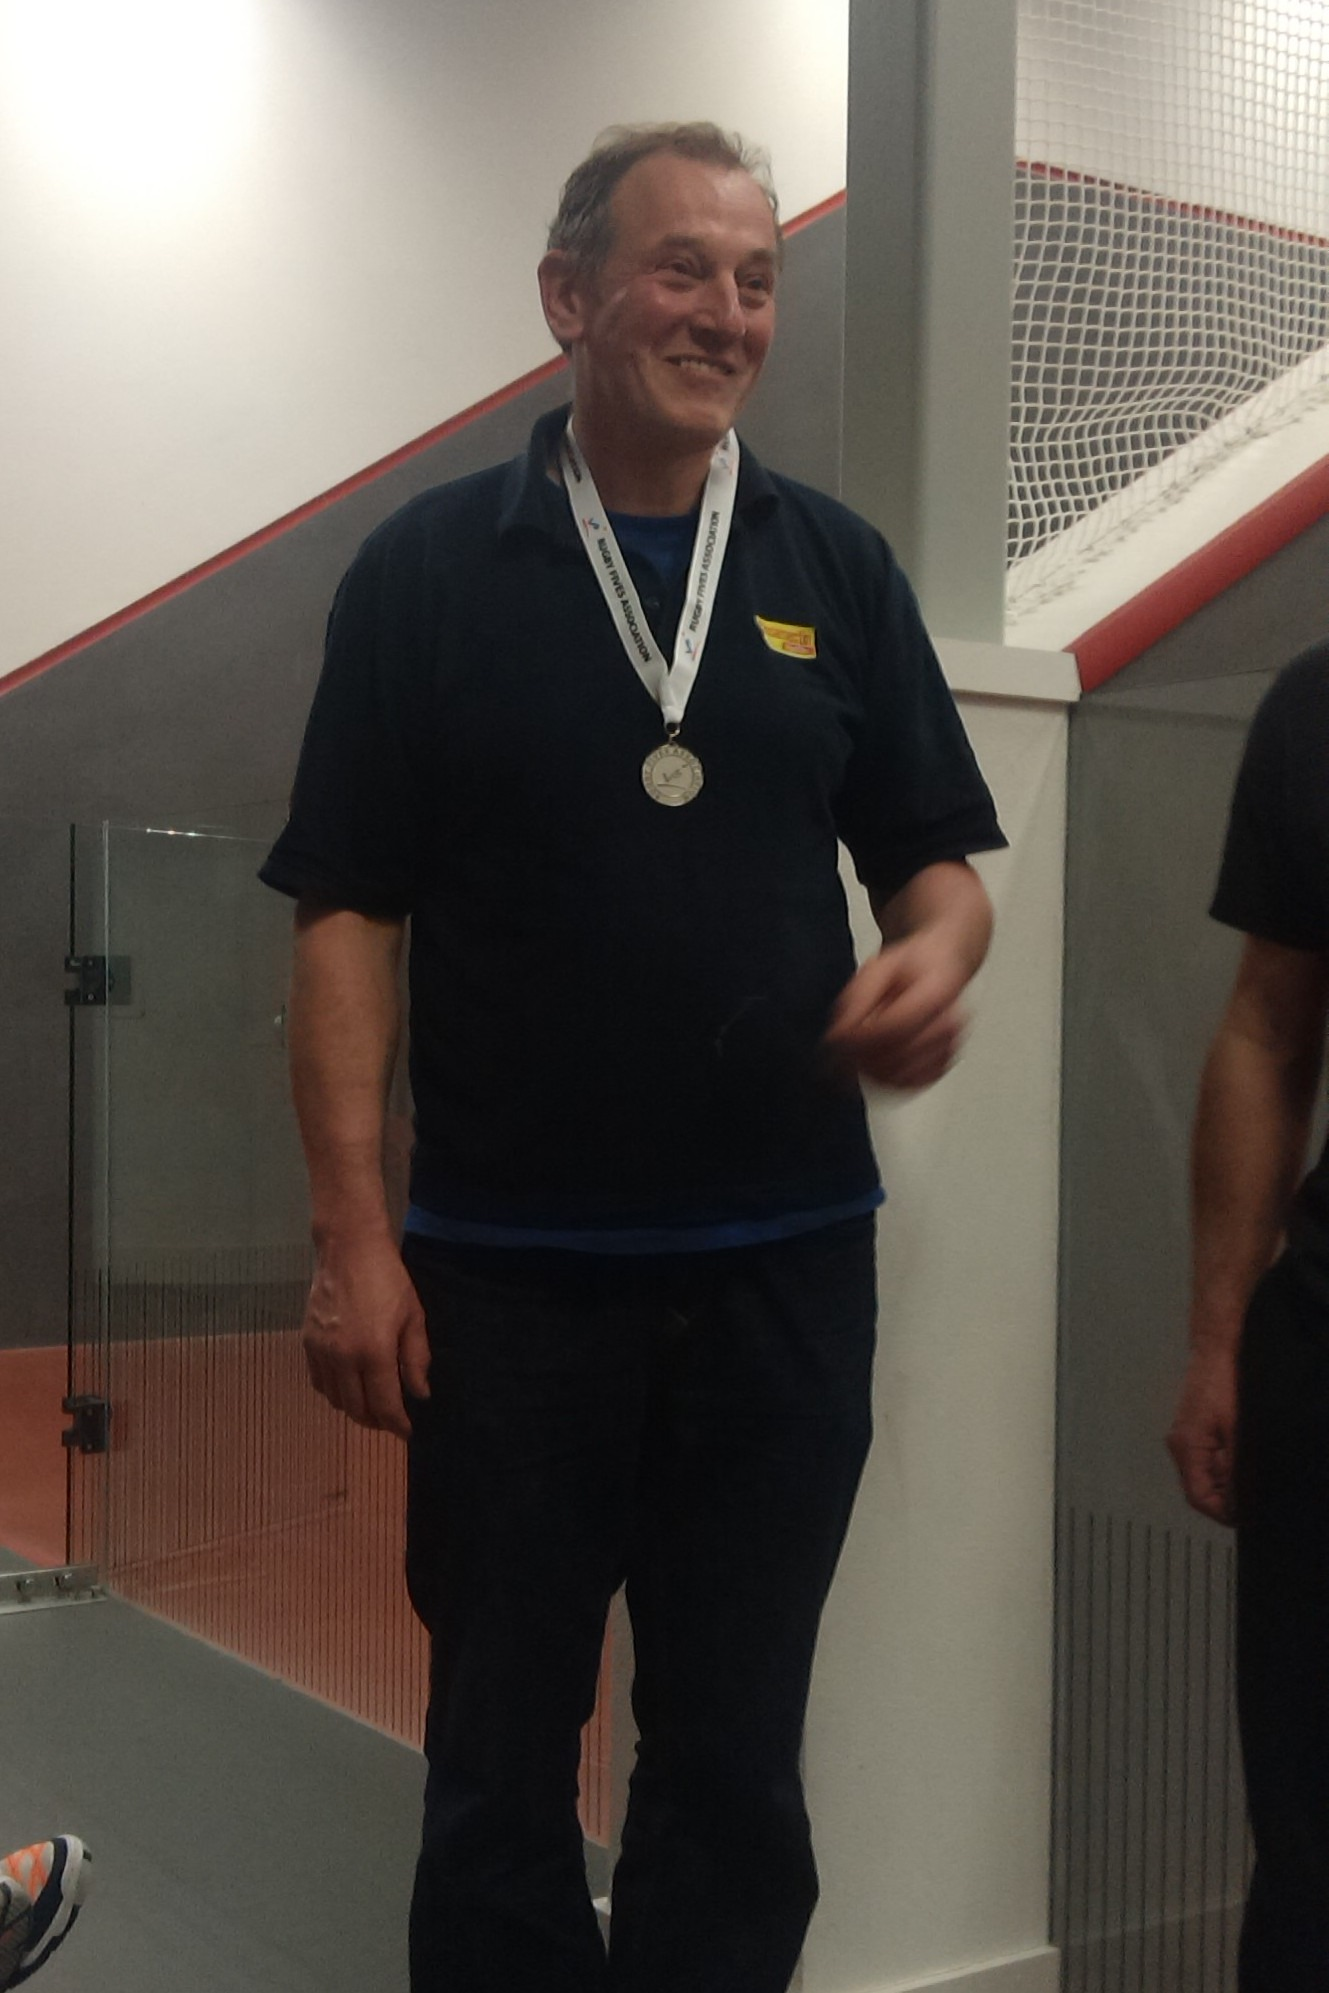 The ever-smiling Singles silver medallist Neil Roberts